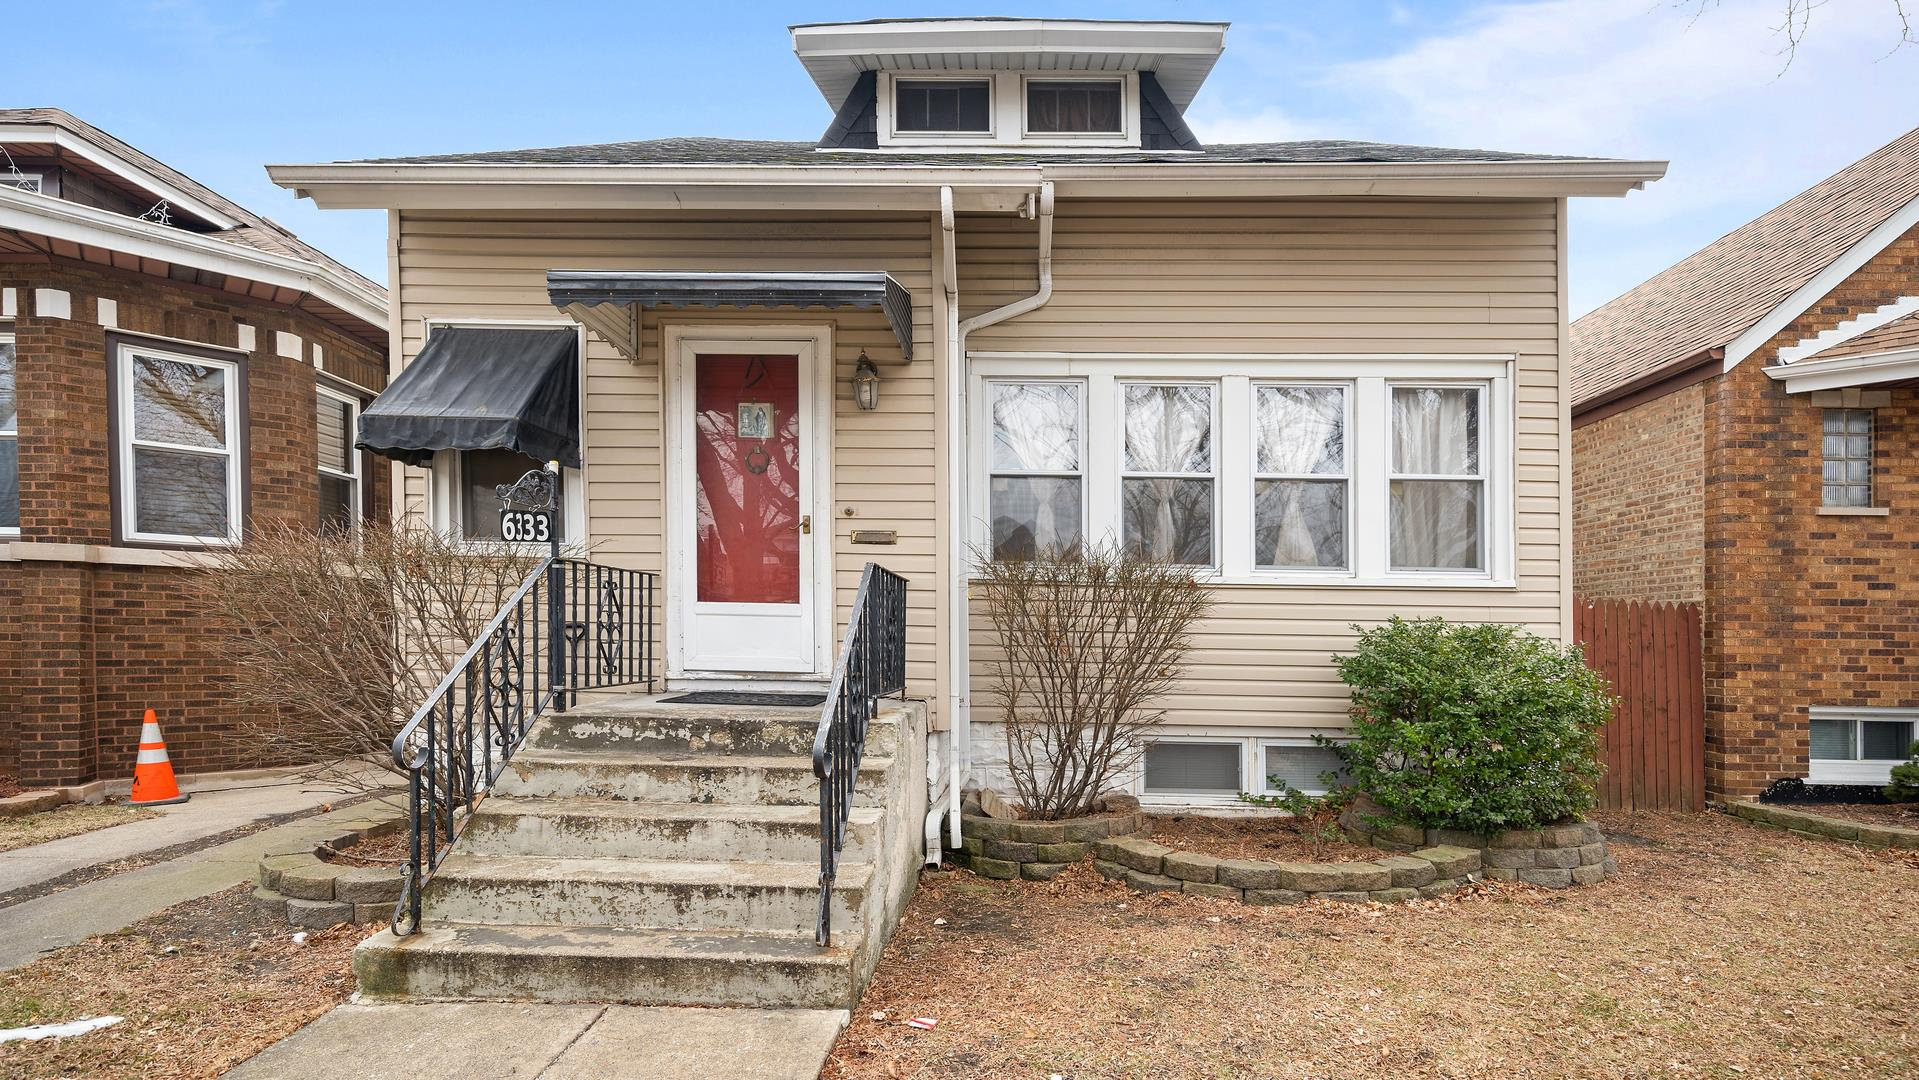 6333 S KARLOV Avenue, Chicago, IL 60629 - #: 10983311